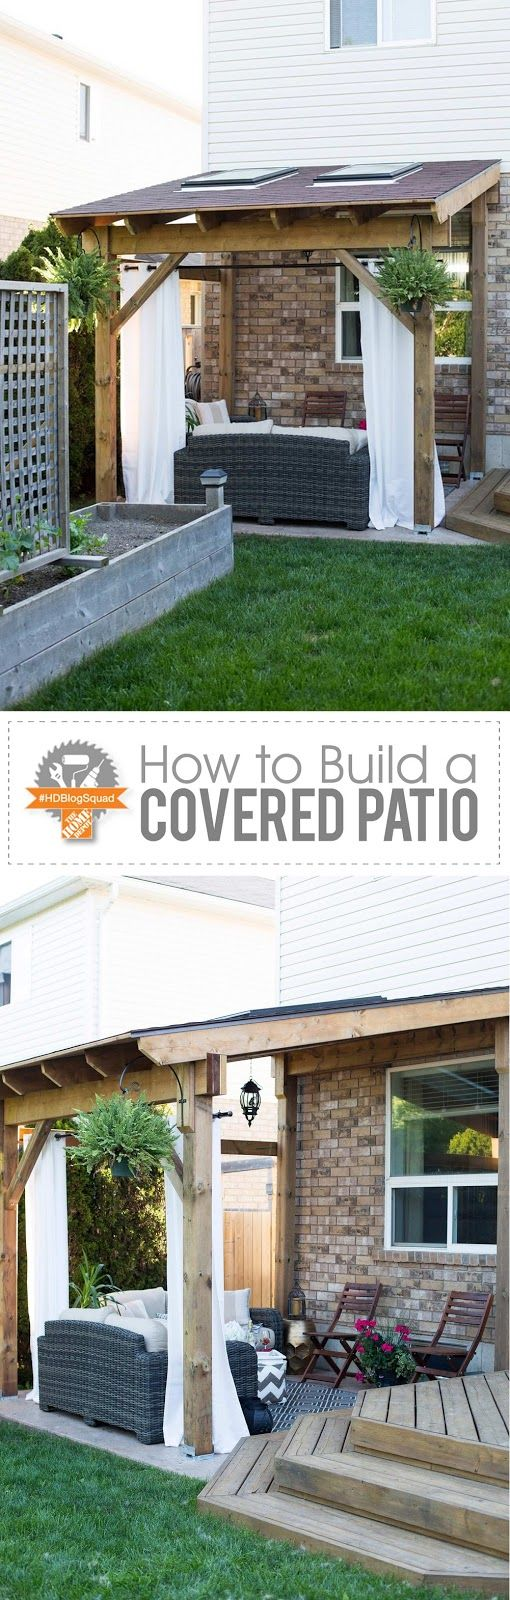 best 25+ backyard covered patios ideas on pinterest | outdoor ... - Diy Patio Cover Ideas